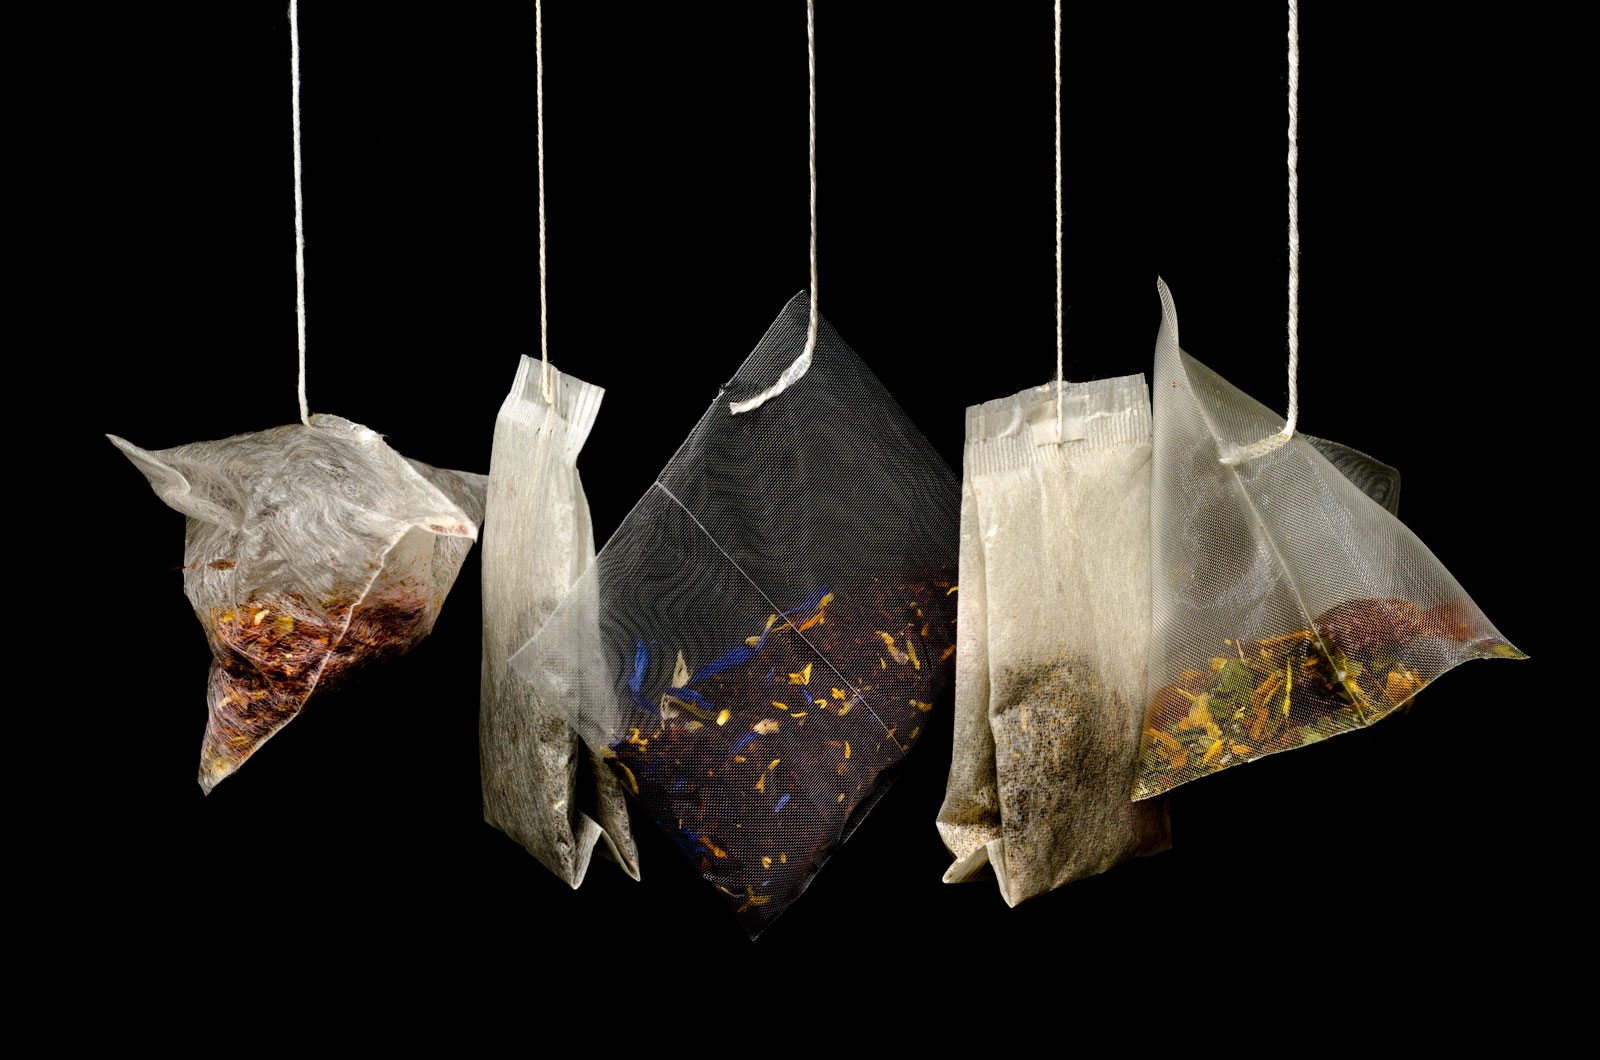 Bagged Tea | Is Loose Leaf Tea Better For You Than Bagged Tea?